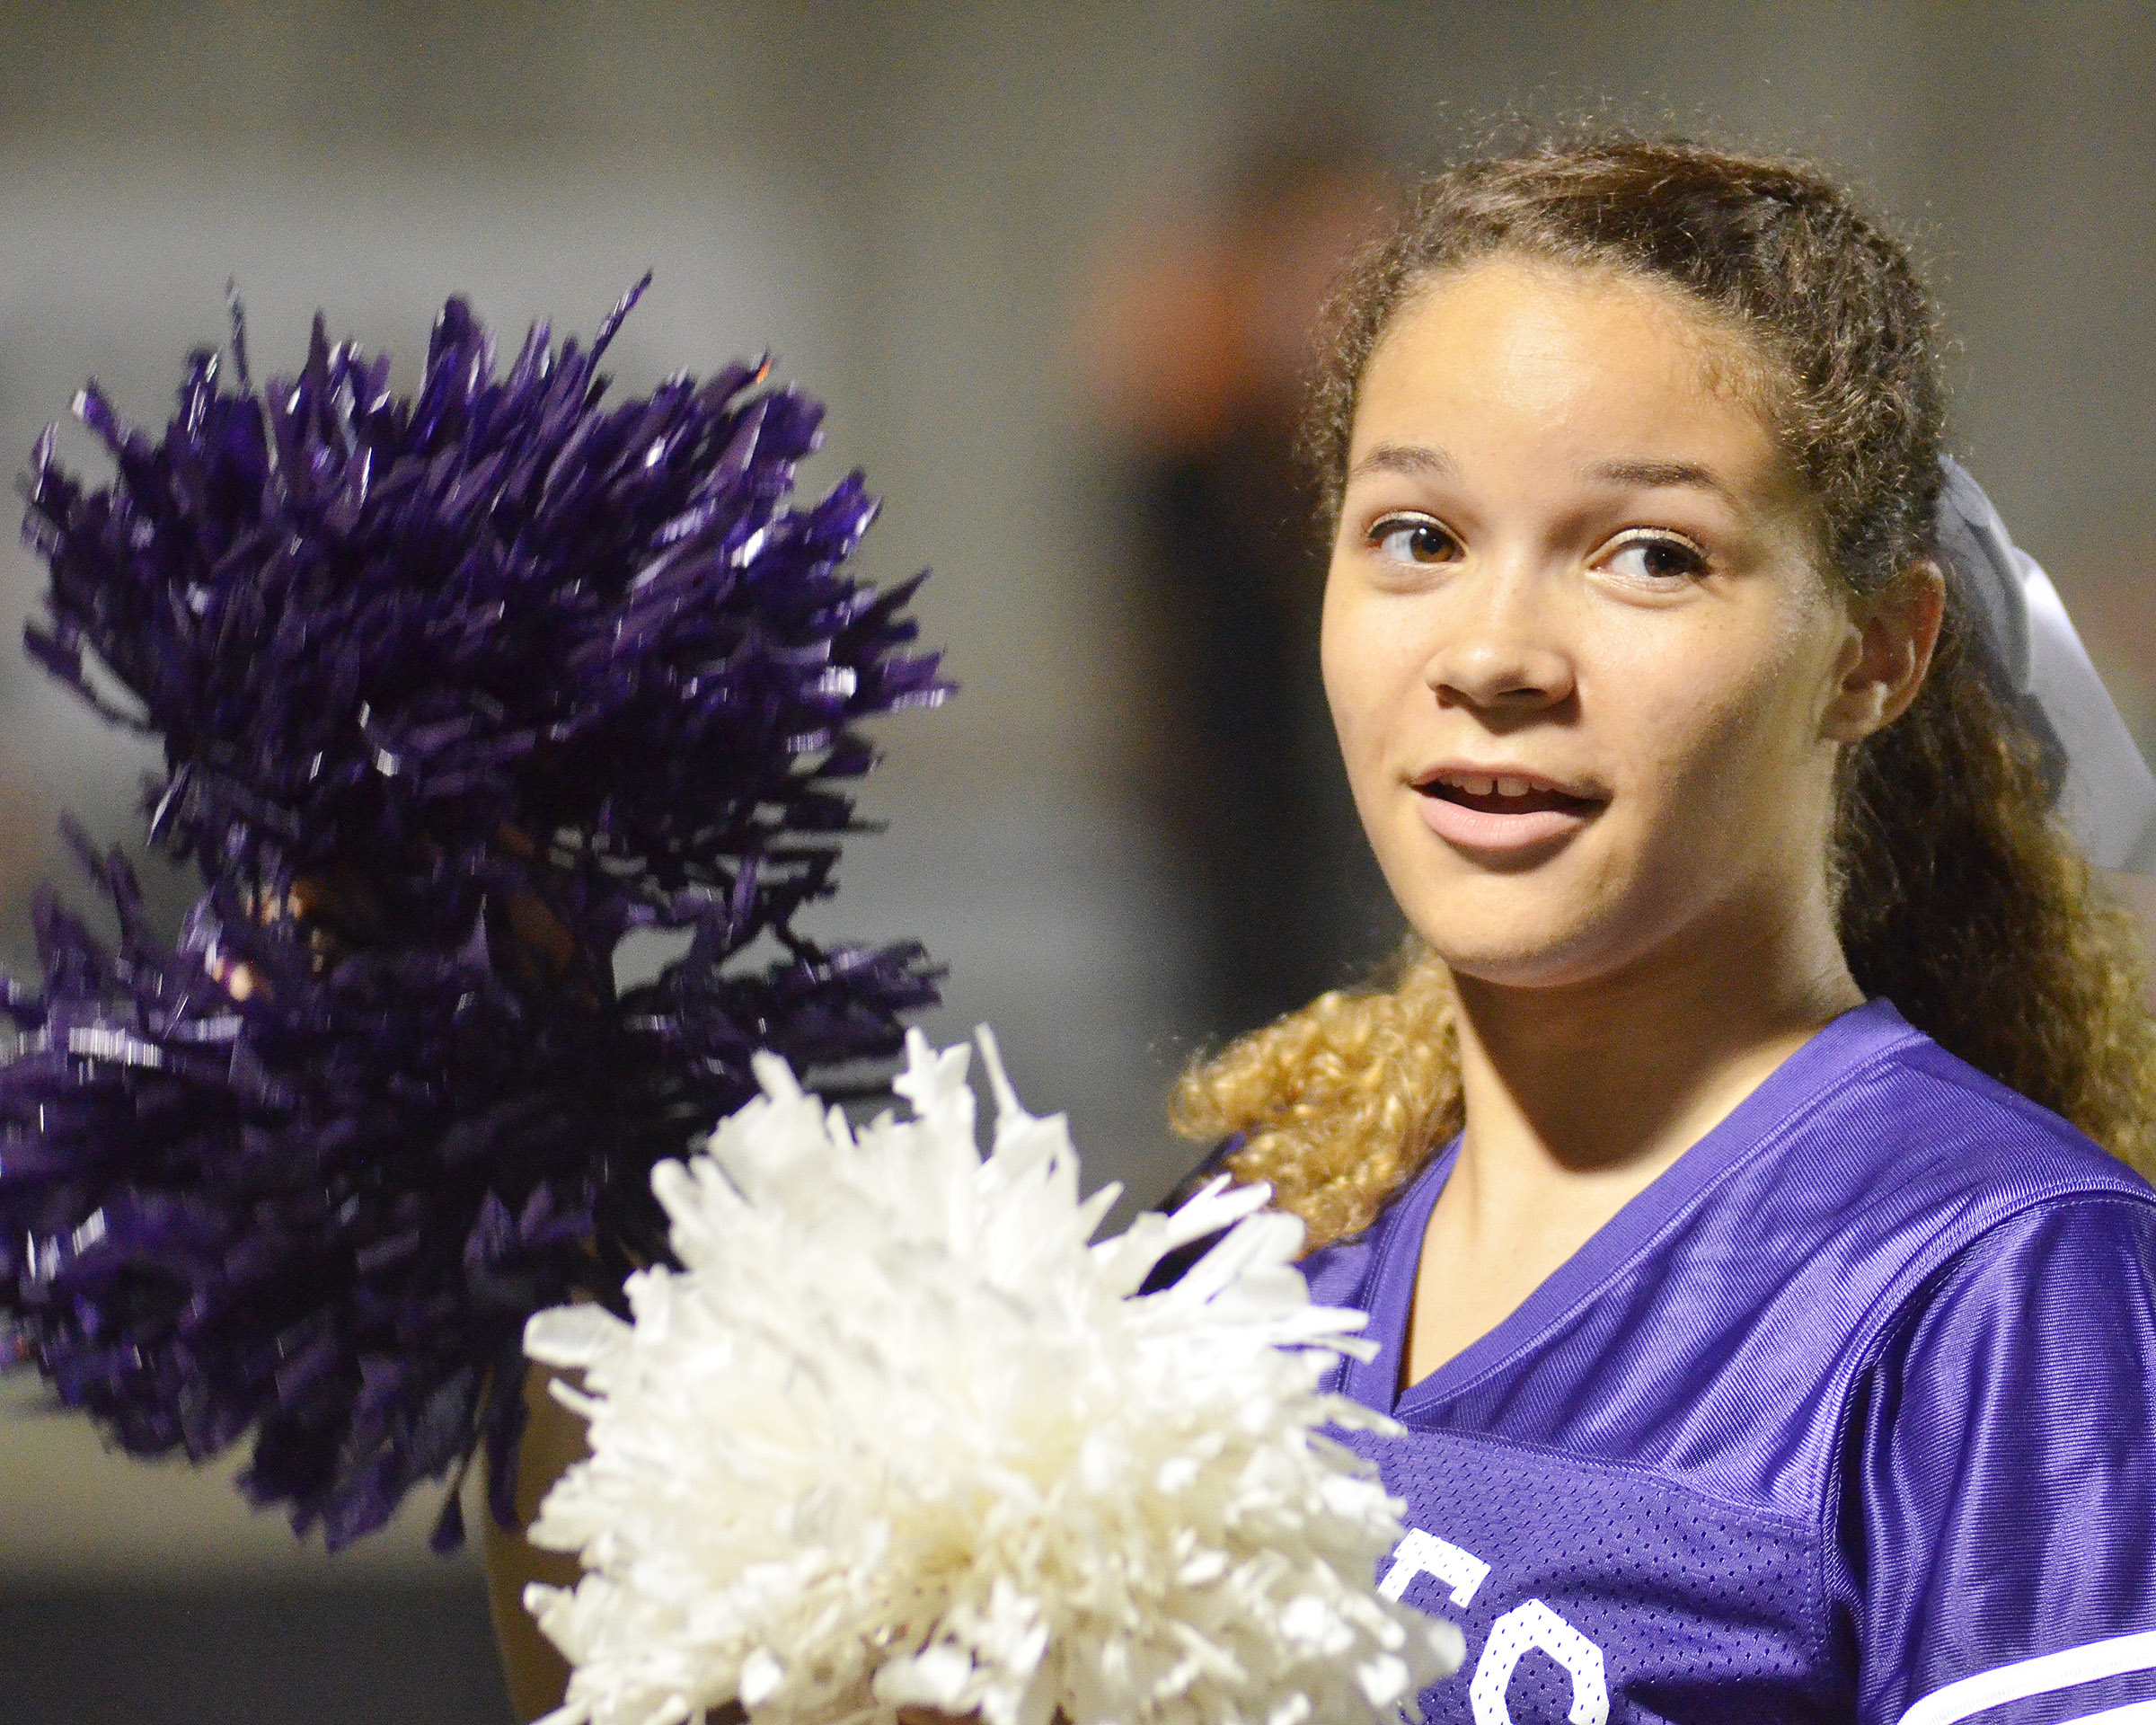 CHS sophomore Taliyah Hazelwood cheers for the Eagles.